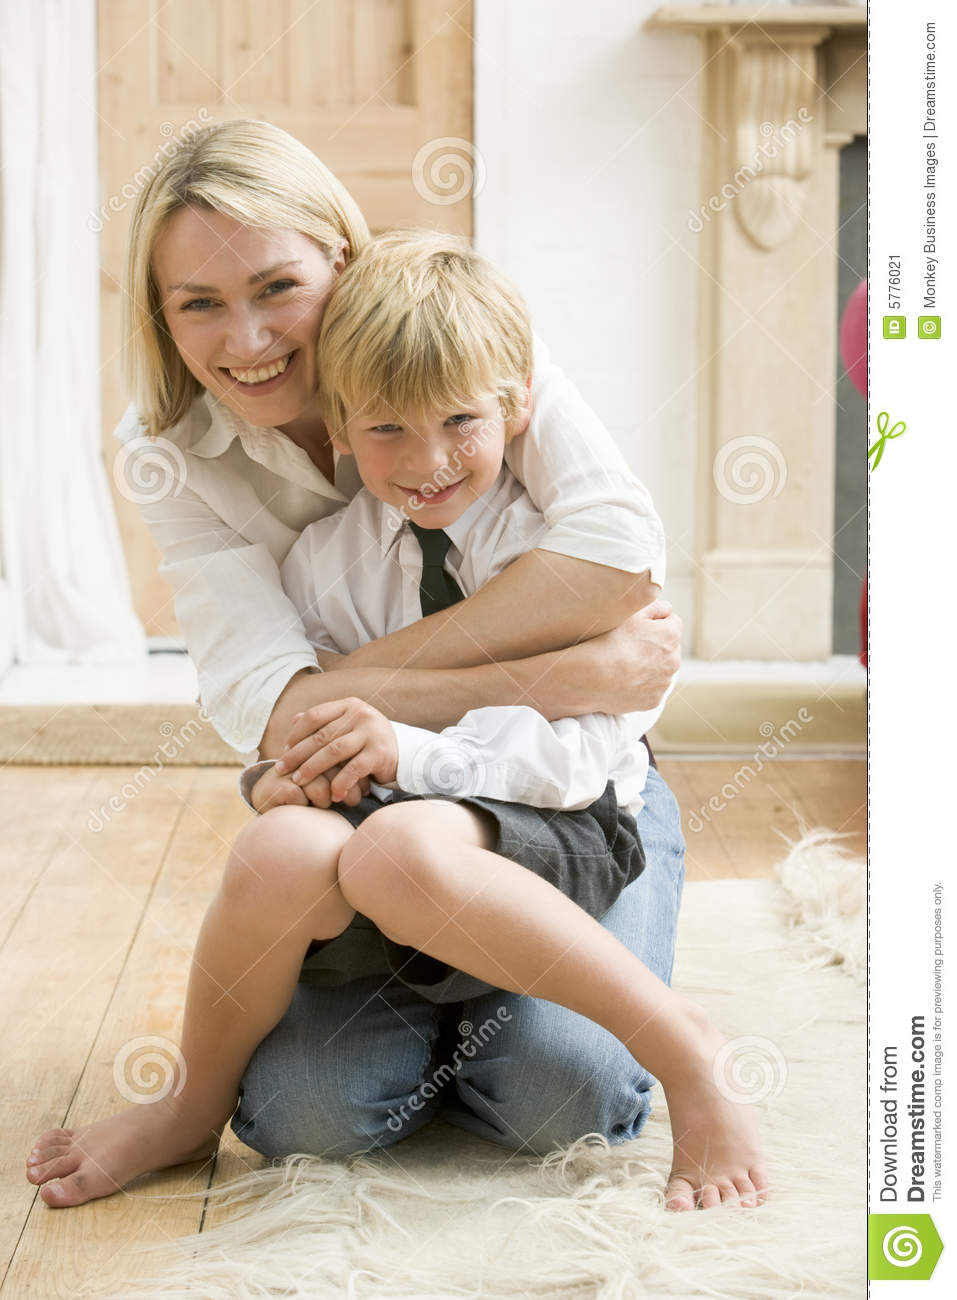 young older boy domination woman Female